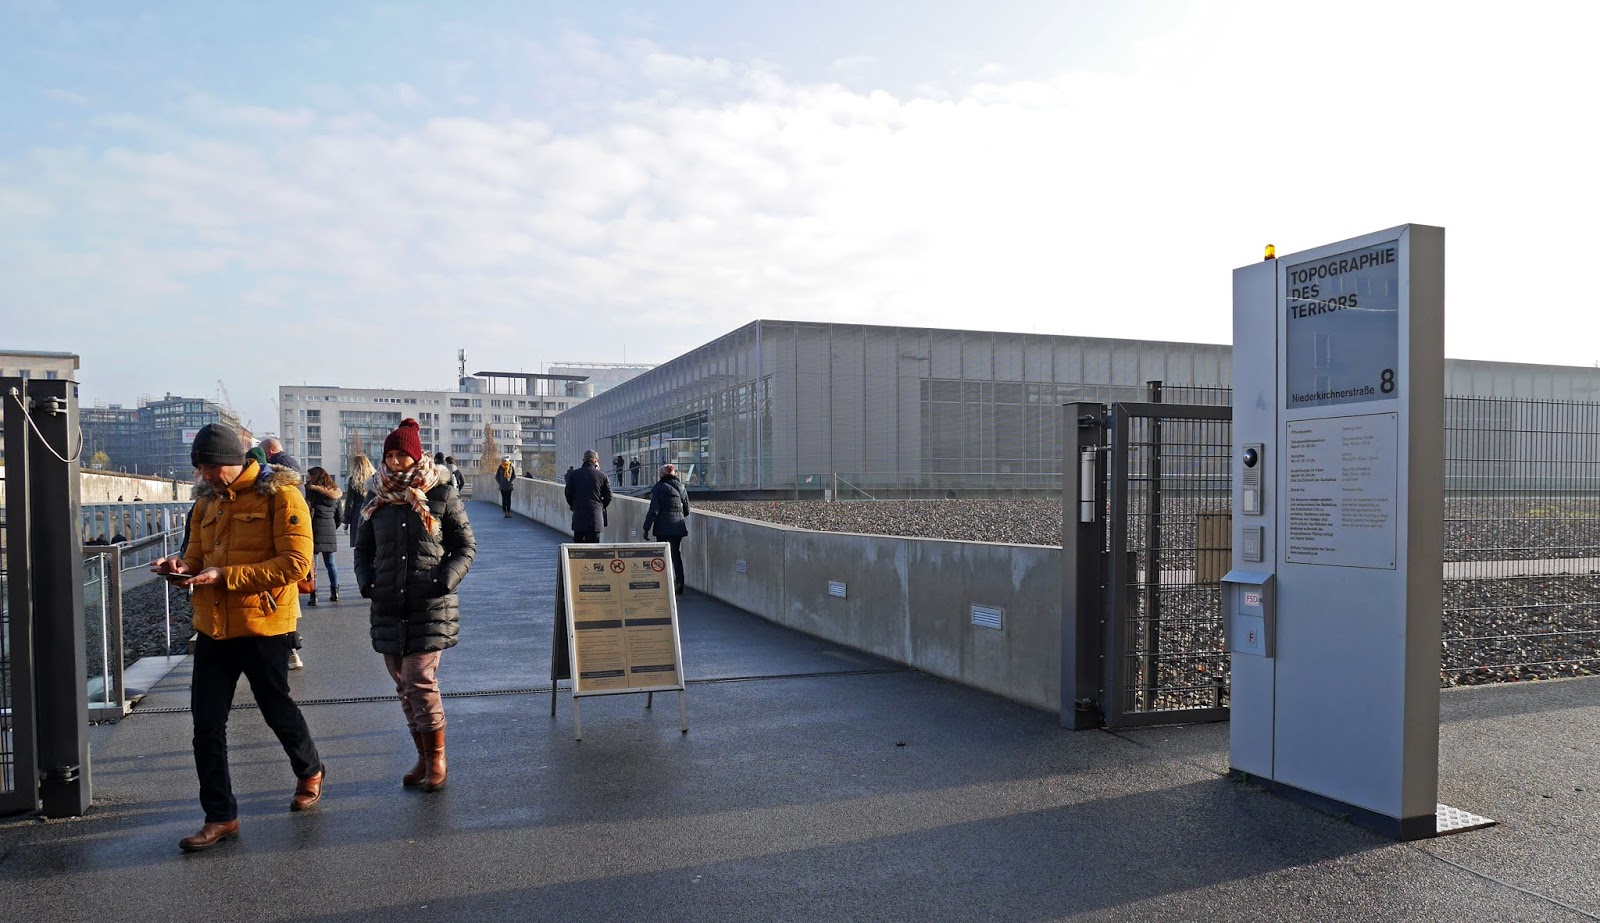 Outside the Topography of Terror museum in Berlin